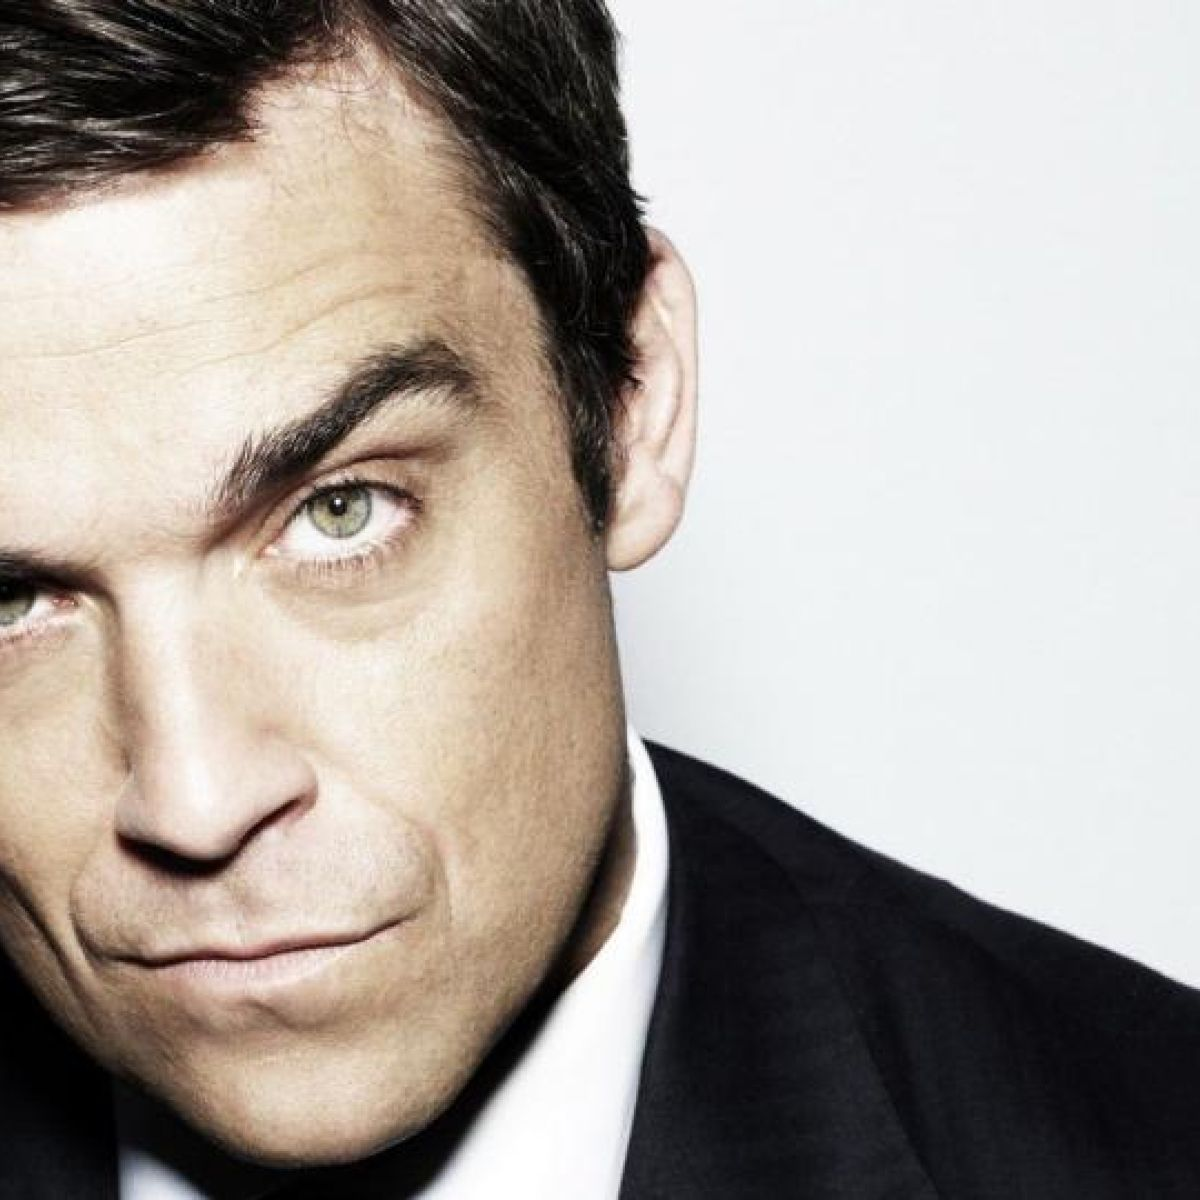 Fallen angel - What went wrong with Robbie Williams?